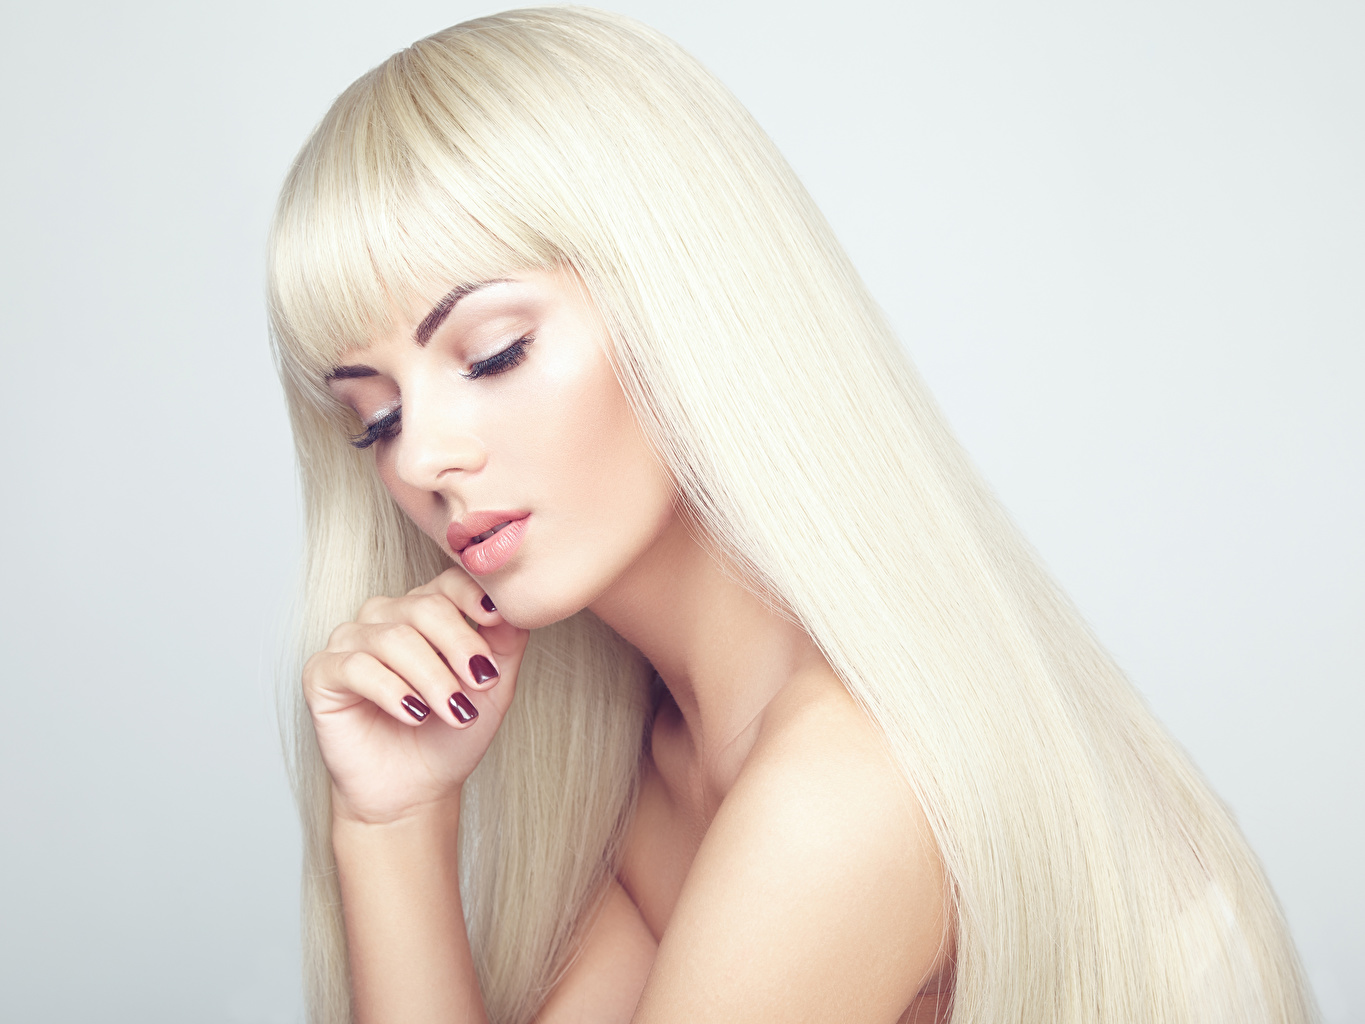 Picture Blonde girl Manicure Makeup Hair Girls Hands Gray background female young woman